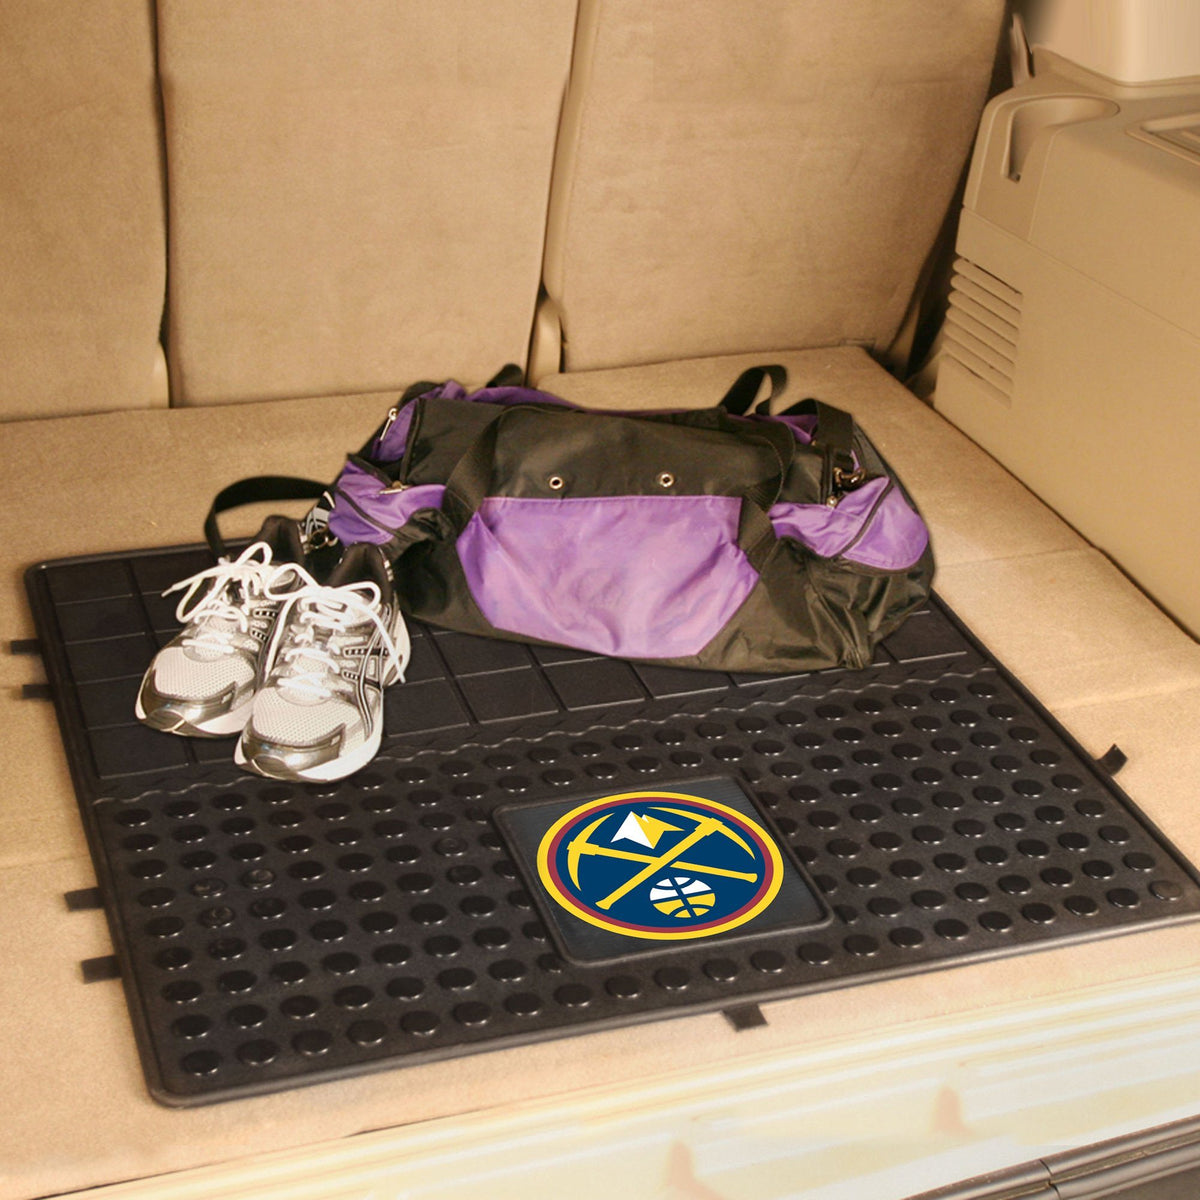 NBA - Heavy Duty Vinyl Cargo Mat NBA Mats, Trunk Mats, Heavy Duty Vinyl Cargo Mat, NBA, Auto Fan Mats Denver Nuggets